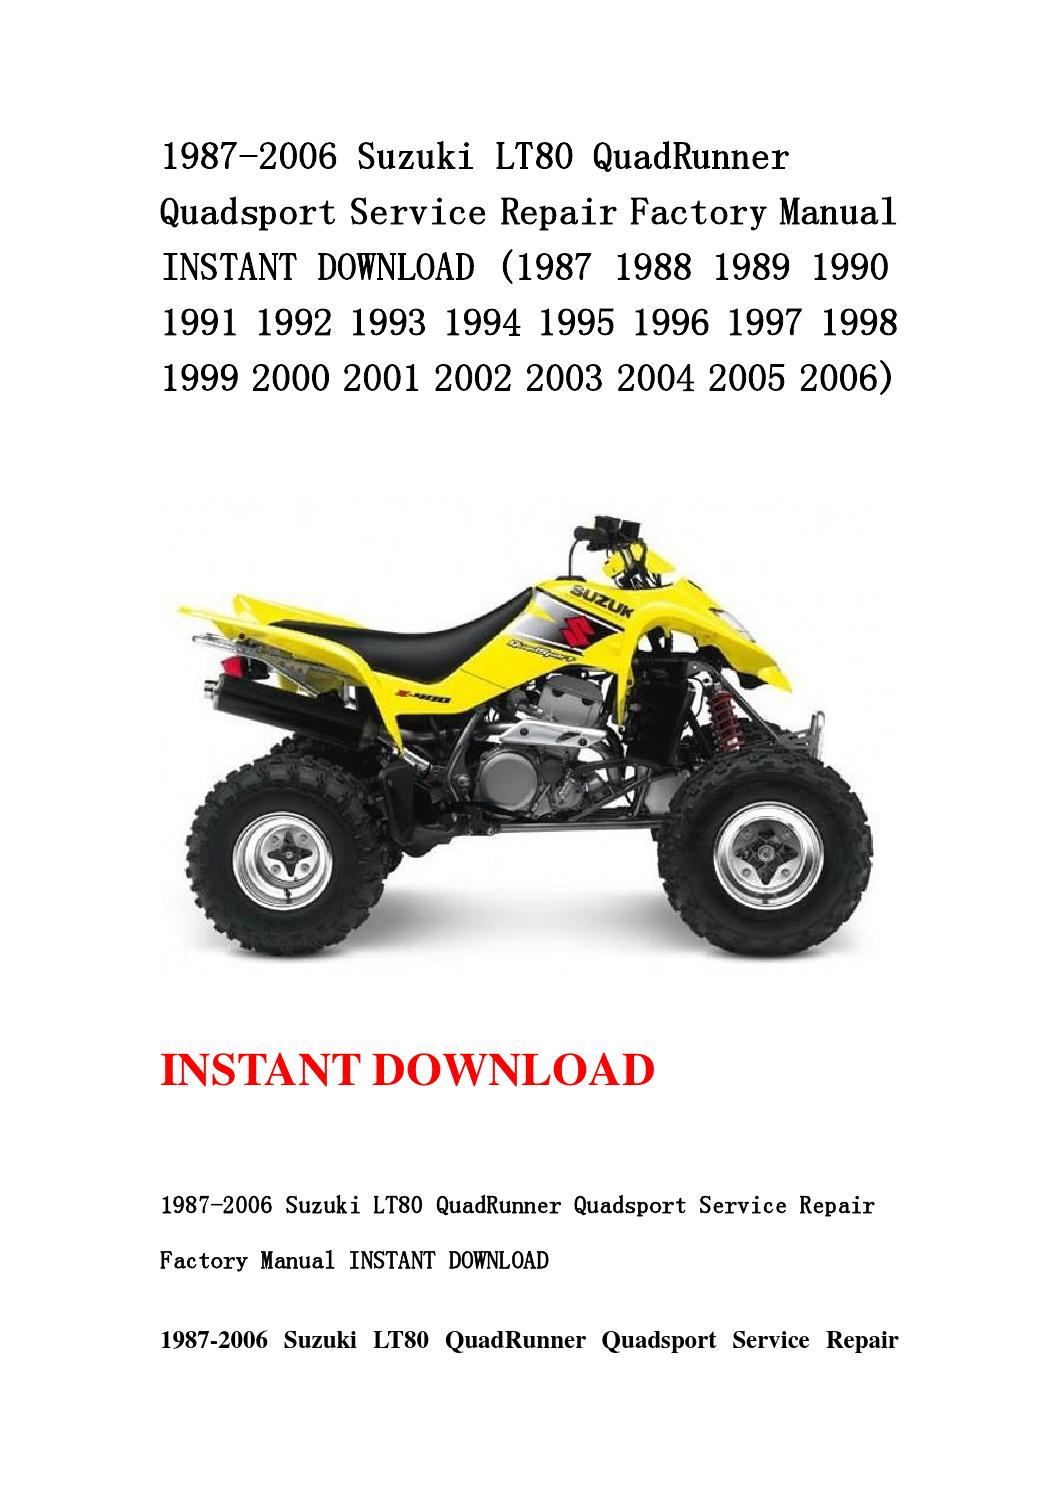 1987 2006 suzuki lt80 quadrunner quadsport service repair factory manual  instant download (1987 1988 by kmsjenfhn - issuu